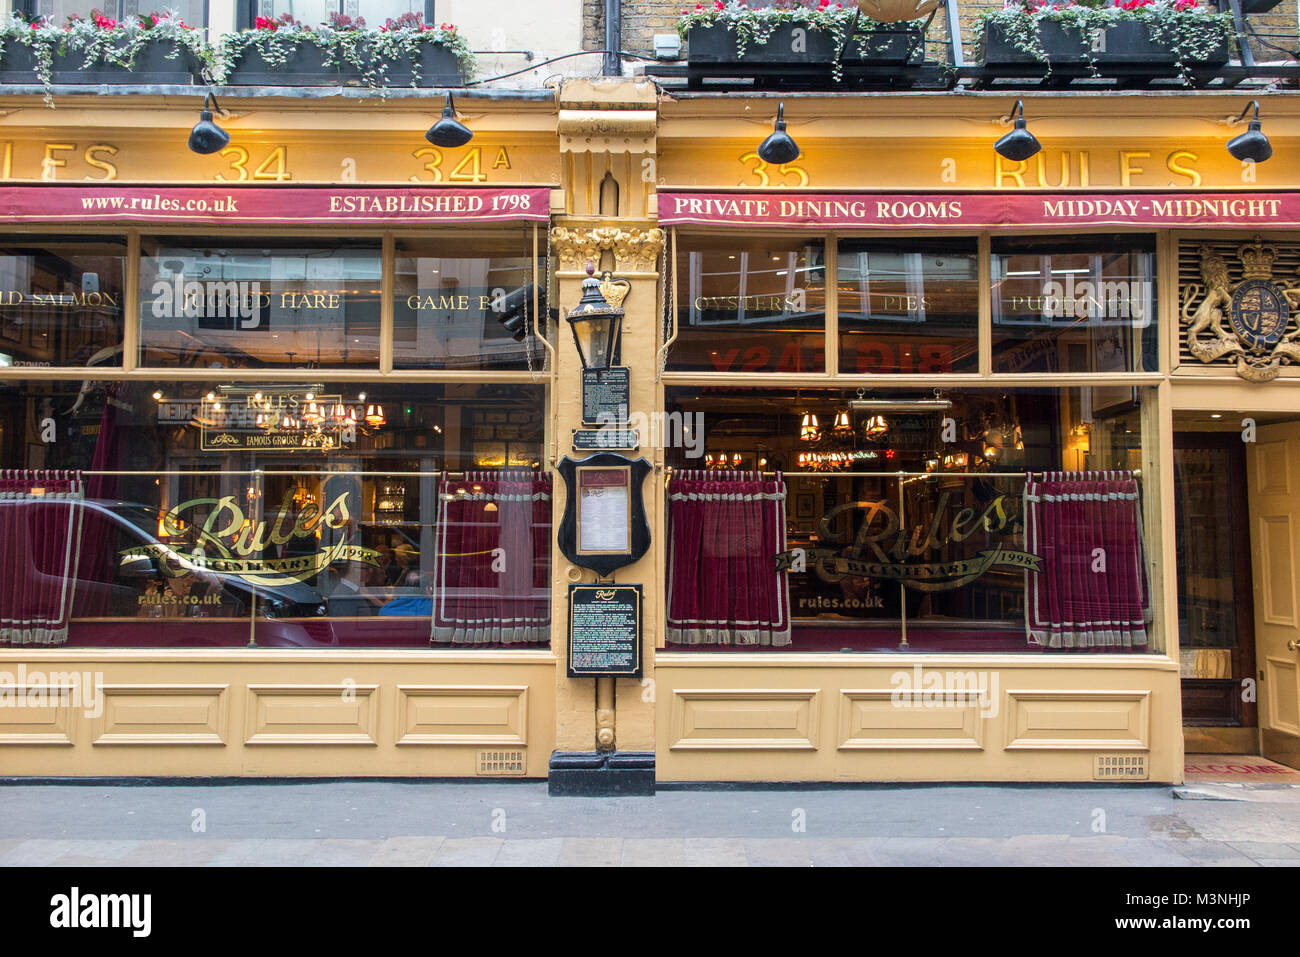 Rules Restaurant in London - oldest restauant in London - Stock Image